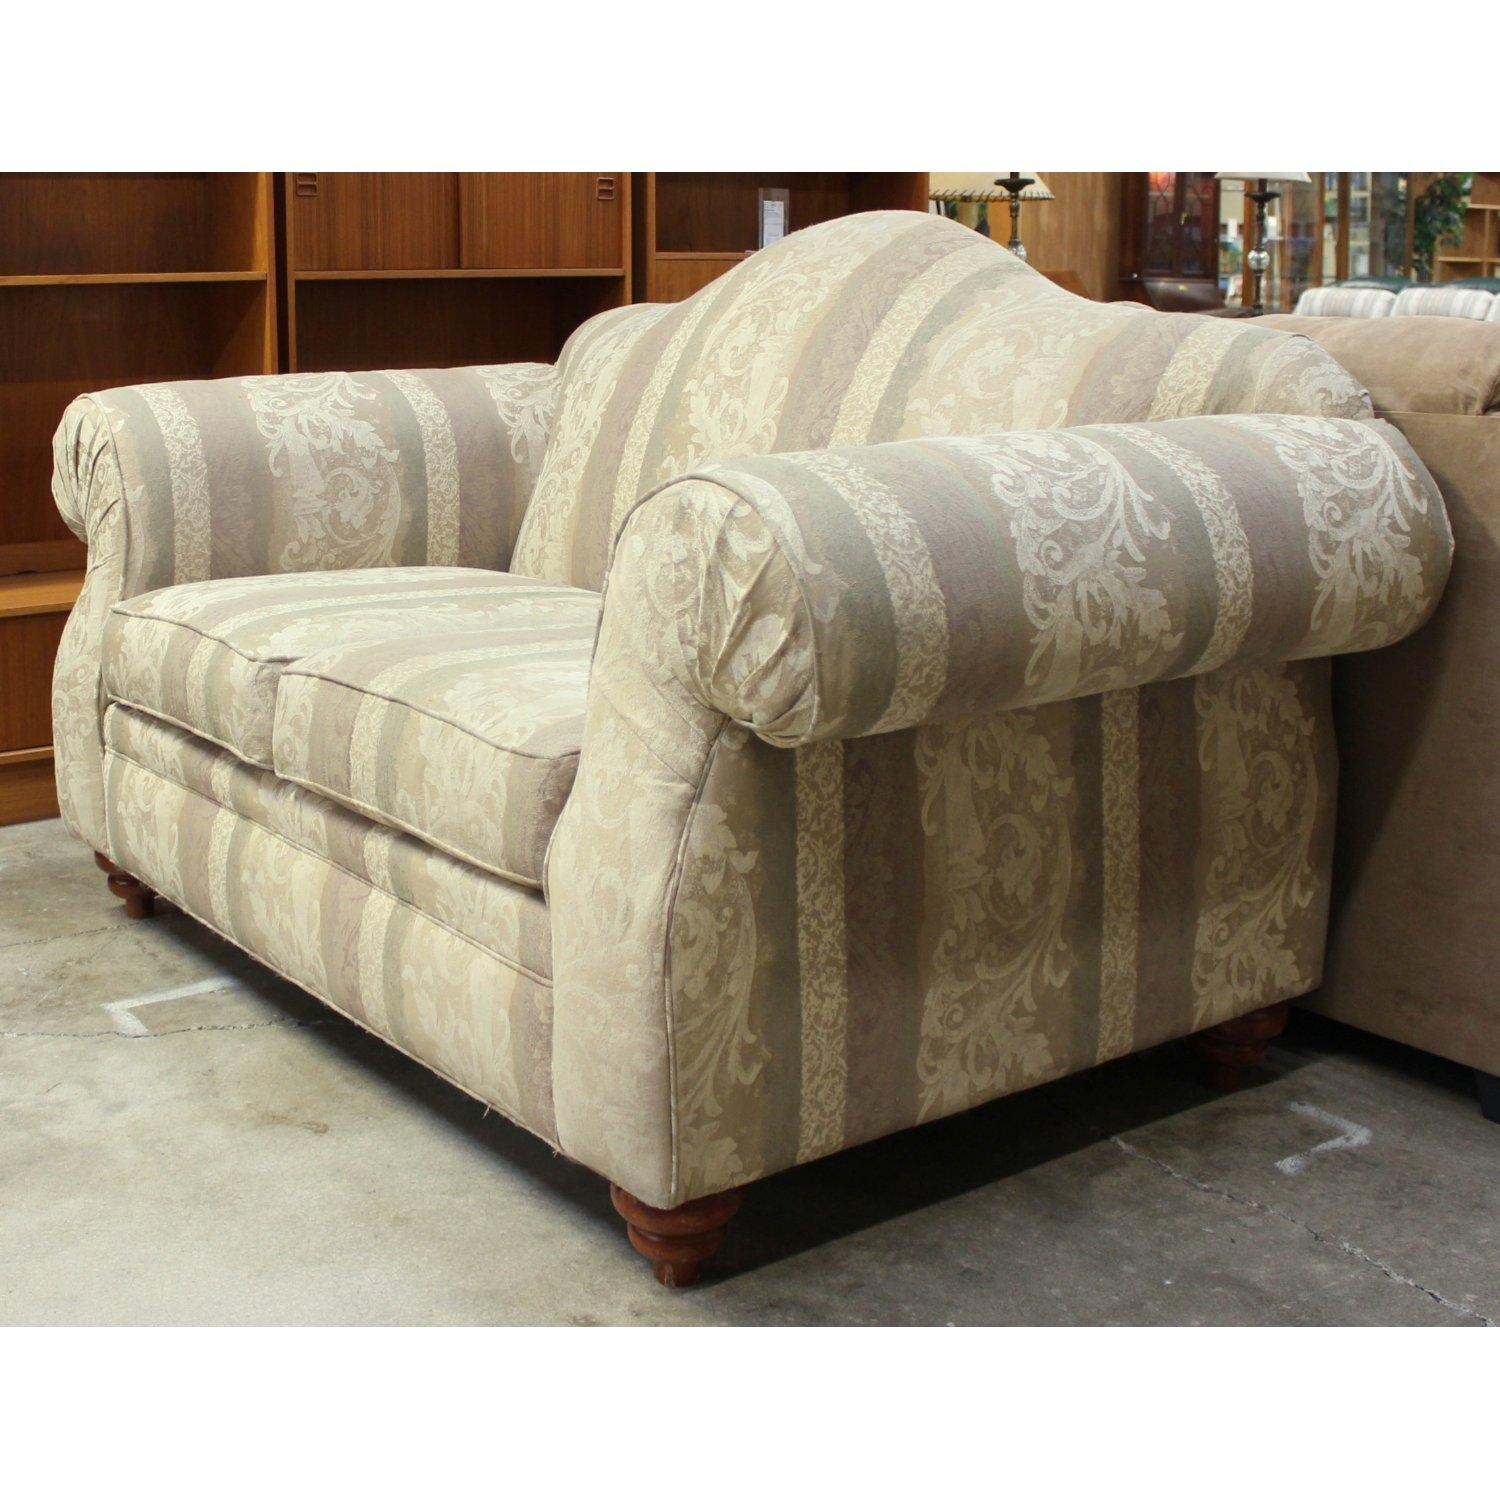 Alan White Camelback Loveseat | Upscale Consignment Within Alan White Couches (View 18 of 20)